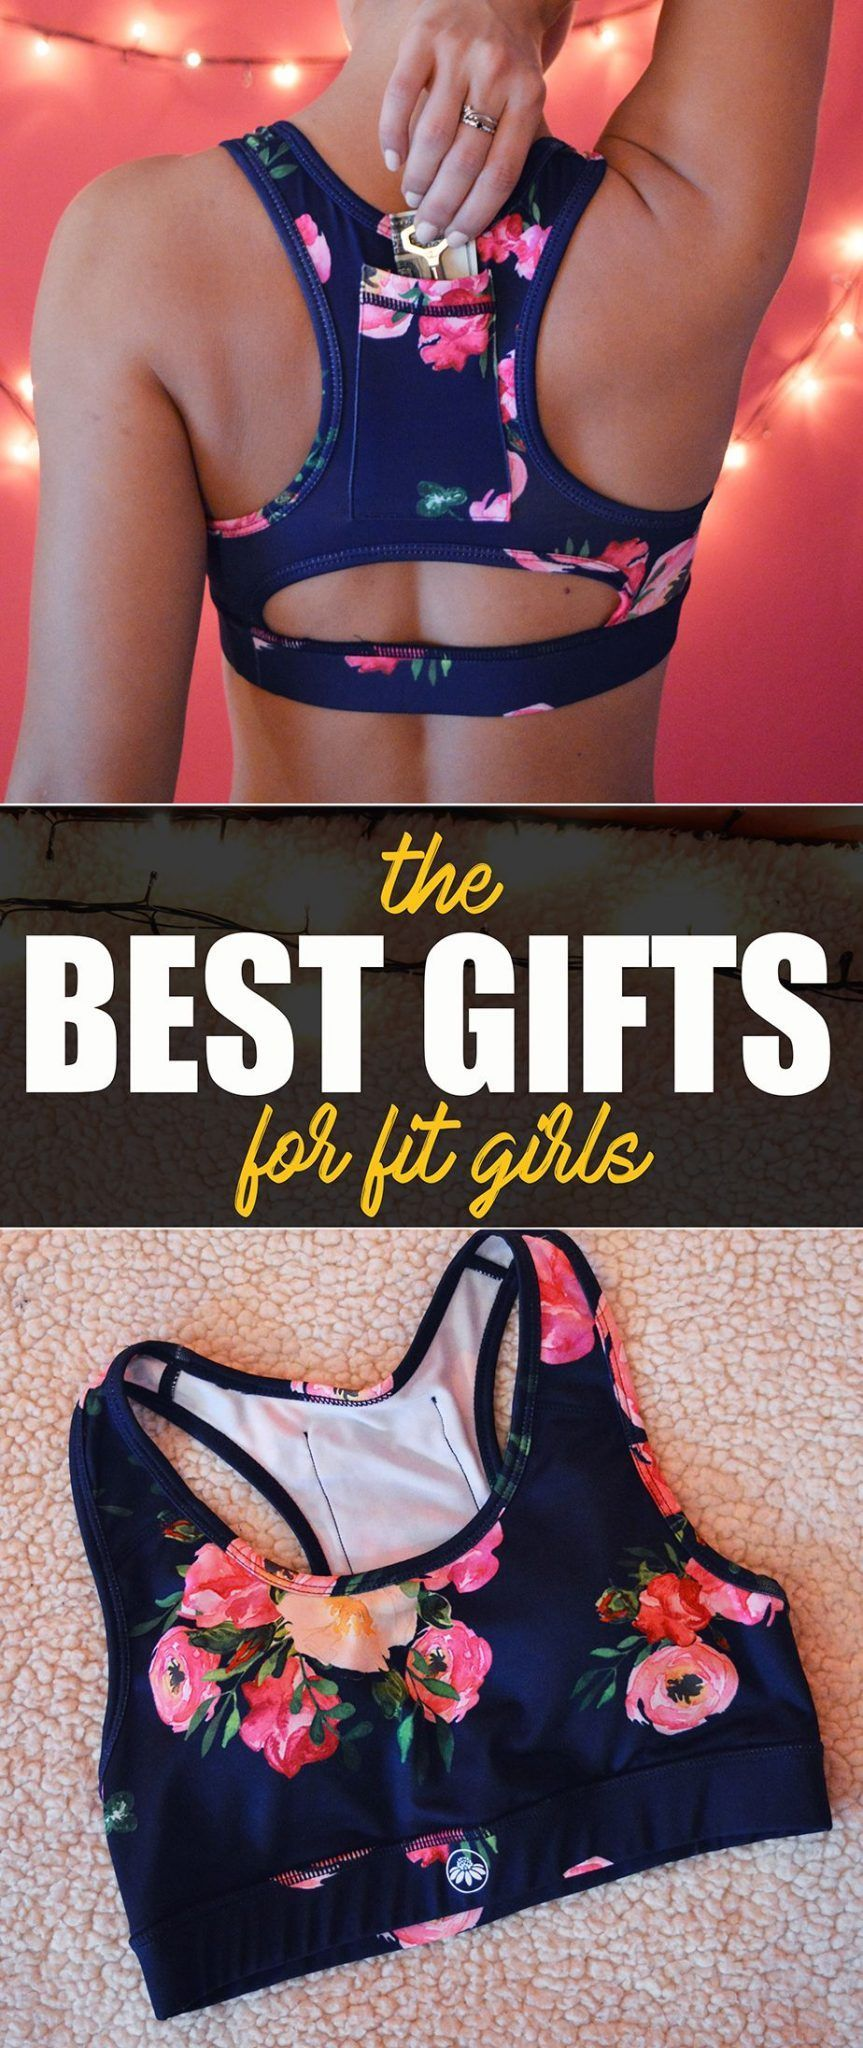 25 Fitness Gift Ideas - The Best Fit Girls Christmas Presents :  sport-bra-2-25-fitness-gift-ideas-t...